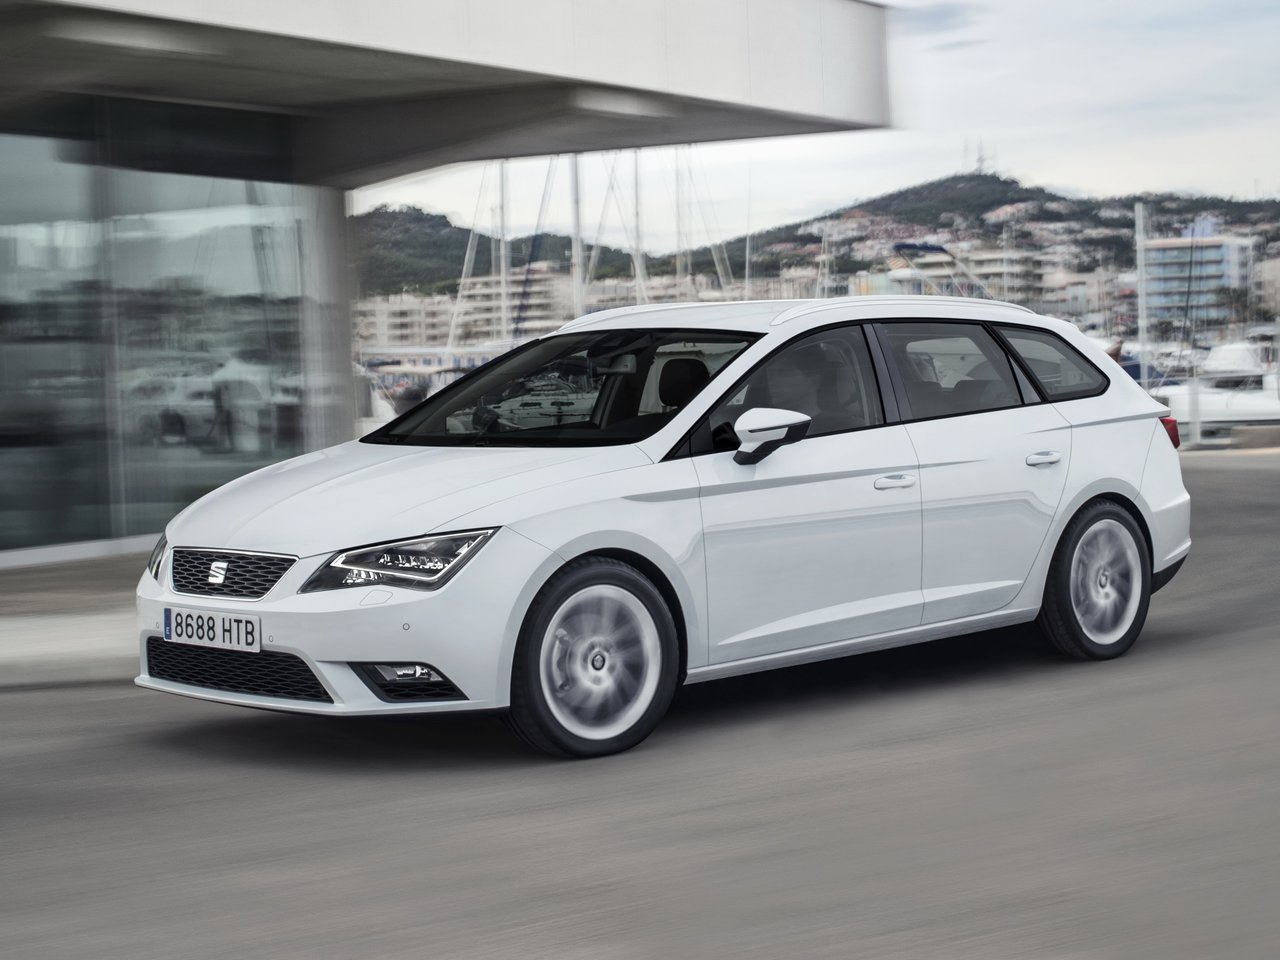 seat leon iii st 1 6 tdi 105 hp start stop dsg. Black Bedroom Furniture Sets. Home Design Ideas